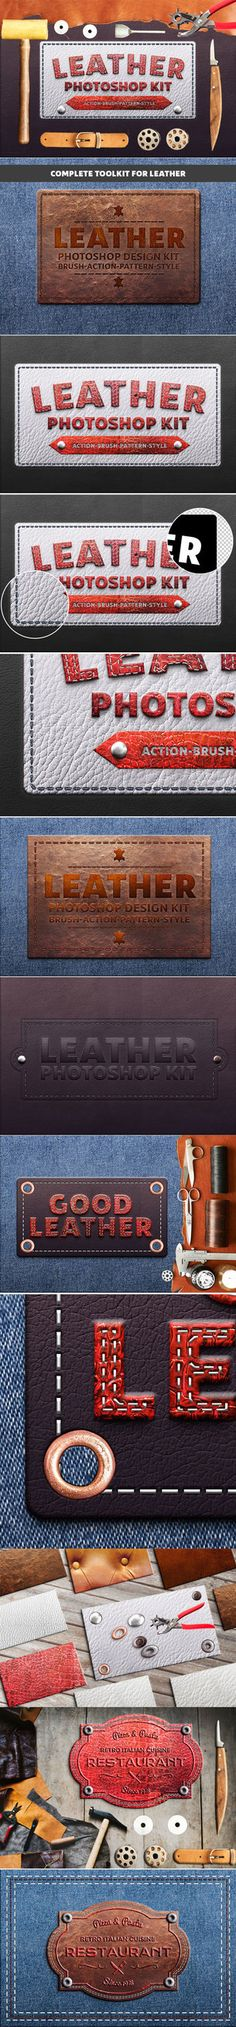 DOWNLOAD:  goo.gl/UT3fU2 Generate realistic leather elements from your text, logo, shape or design in few clicks.Photorealistic and clean effect, high detailEasy and fun to useQui...